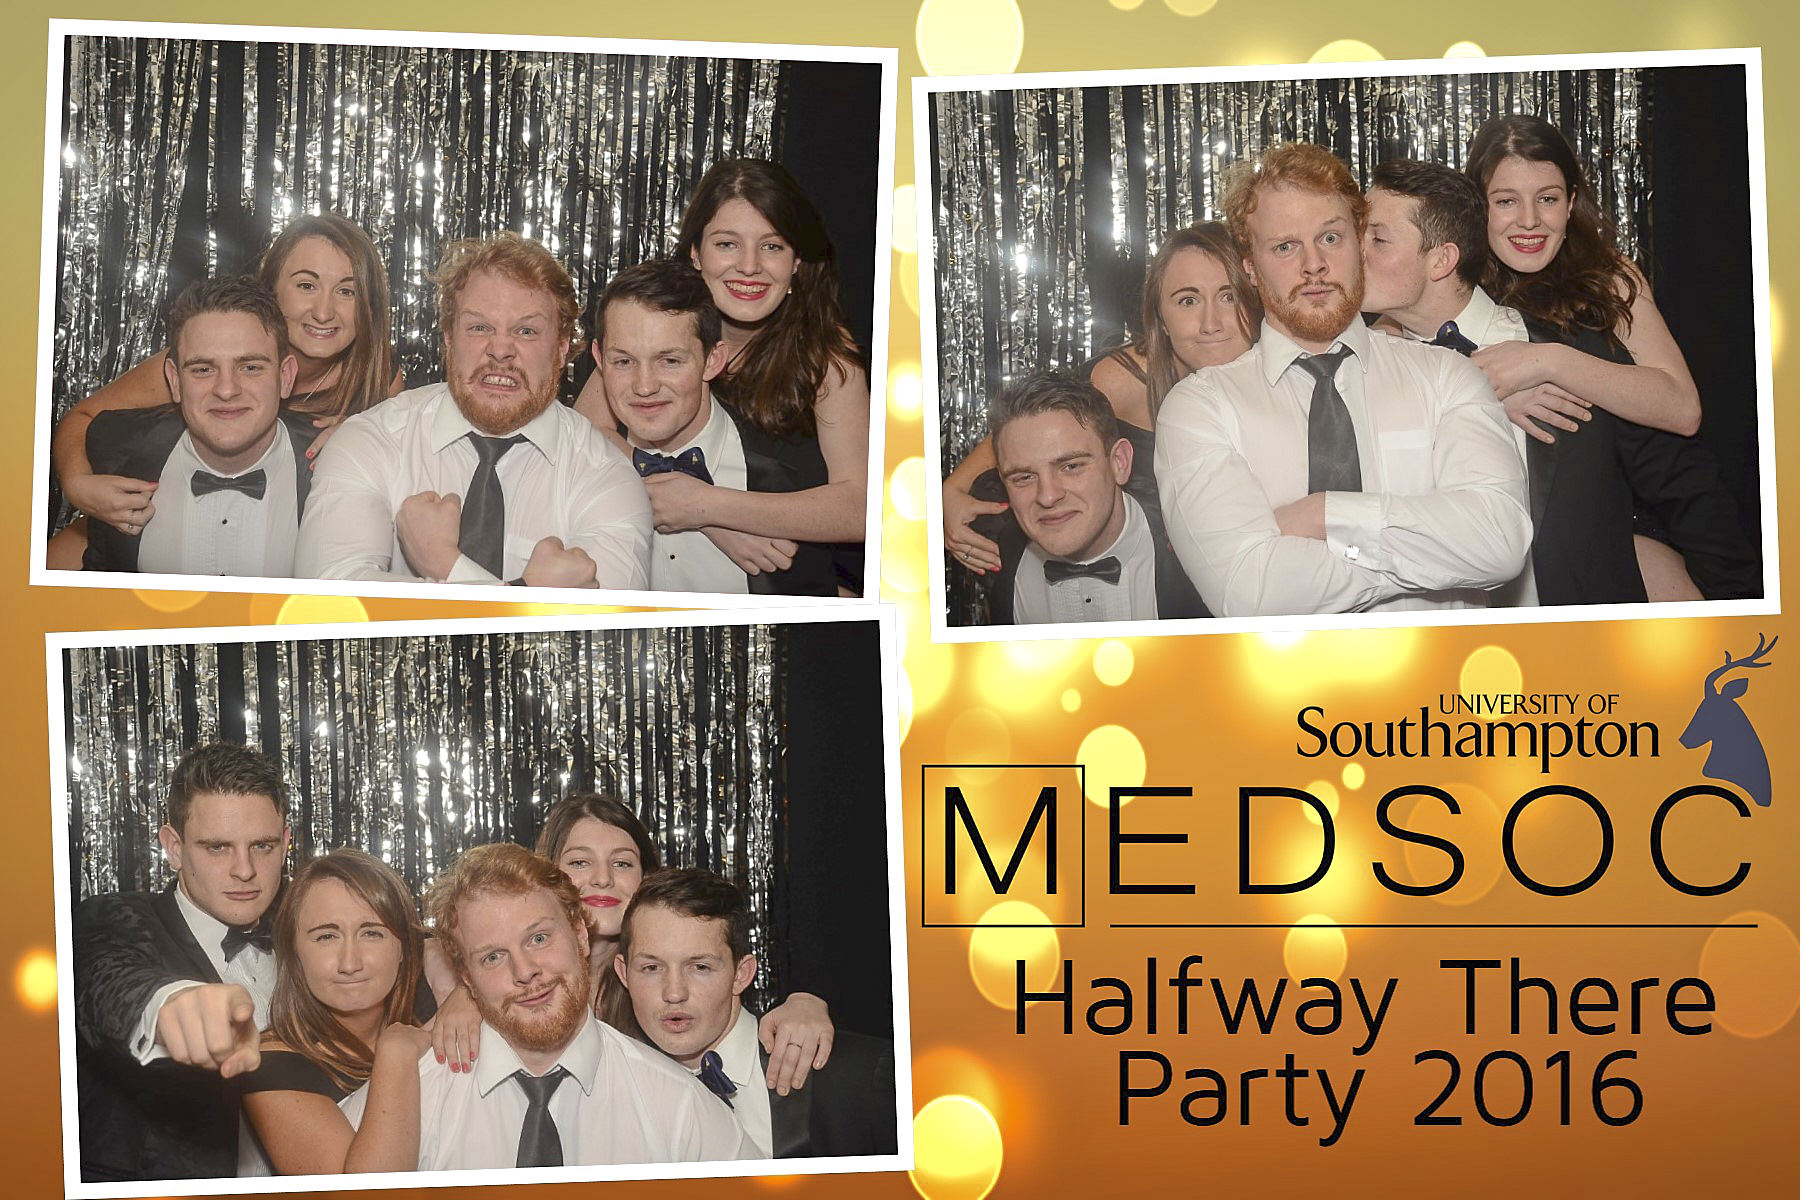 MedSoc Halfway There Party 2016 DS002329.jpg